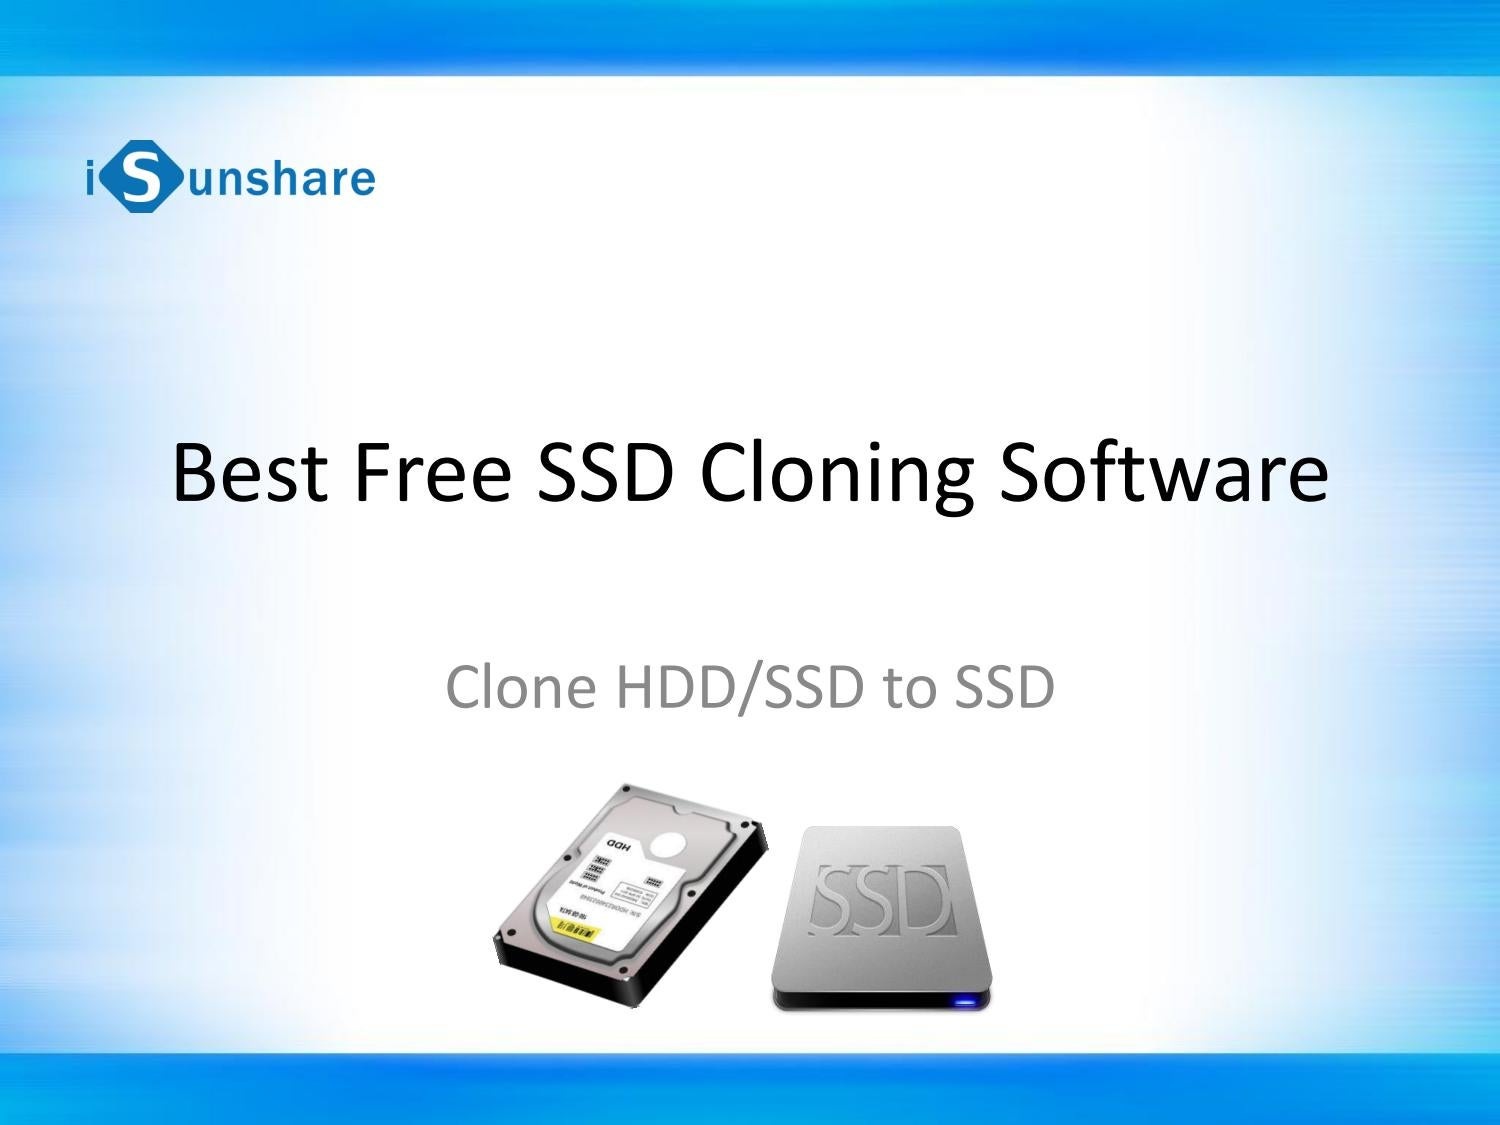 Download iSunshare SSD Cloning Software to Clone Hard Drive to SSD